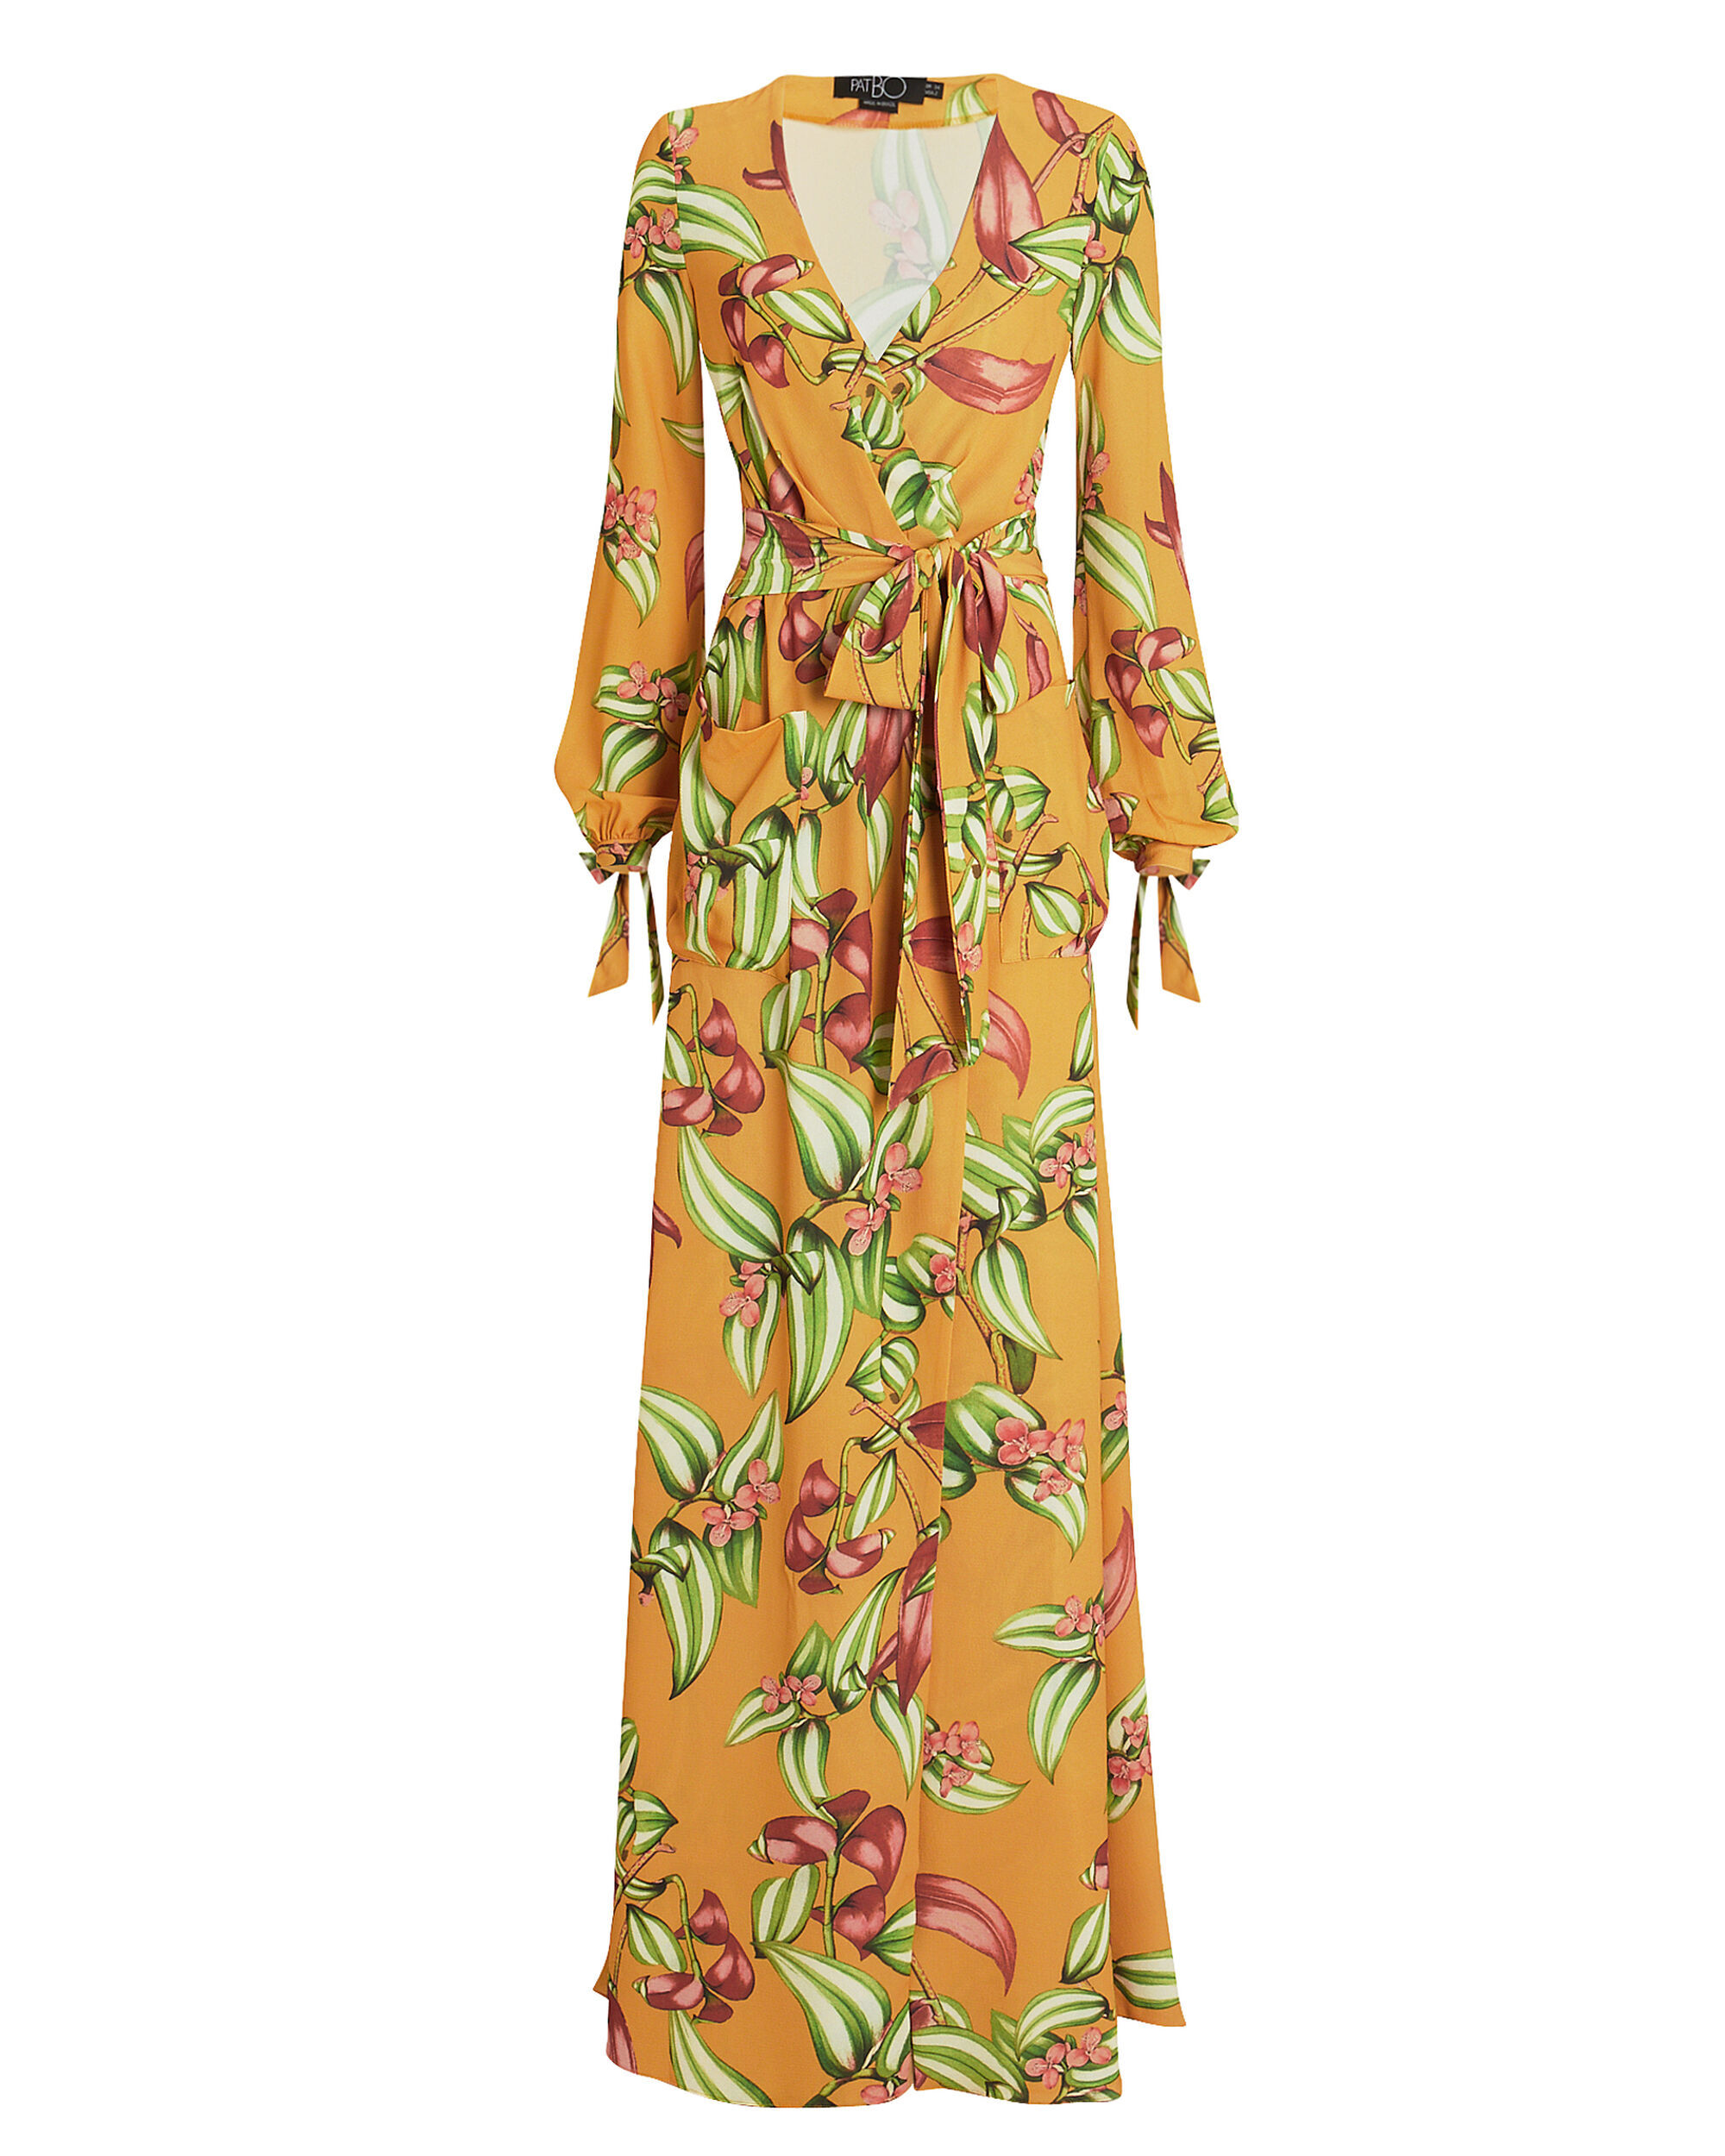 Zebrina Floral Wrap Maxi Dress, YELLOW/FLORAL, hi-res